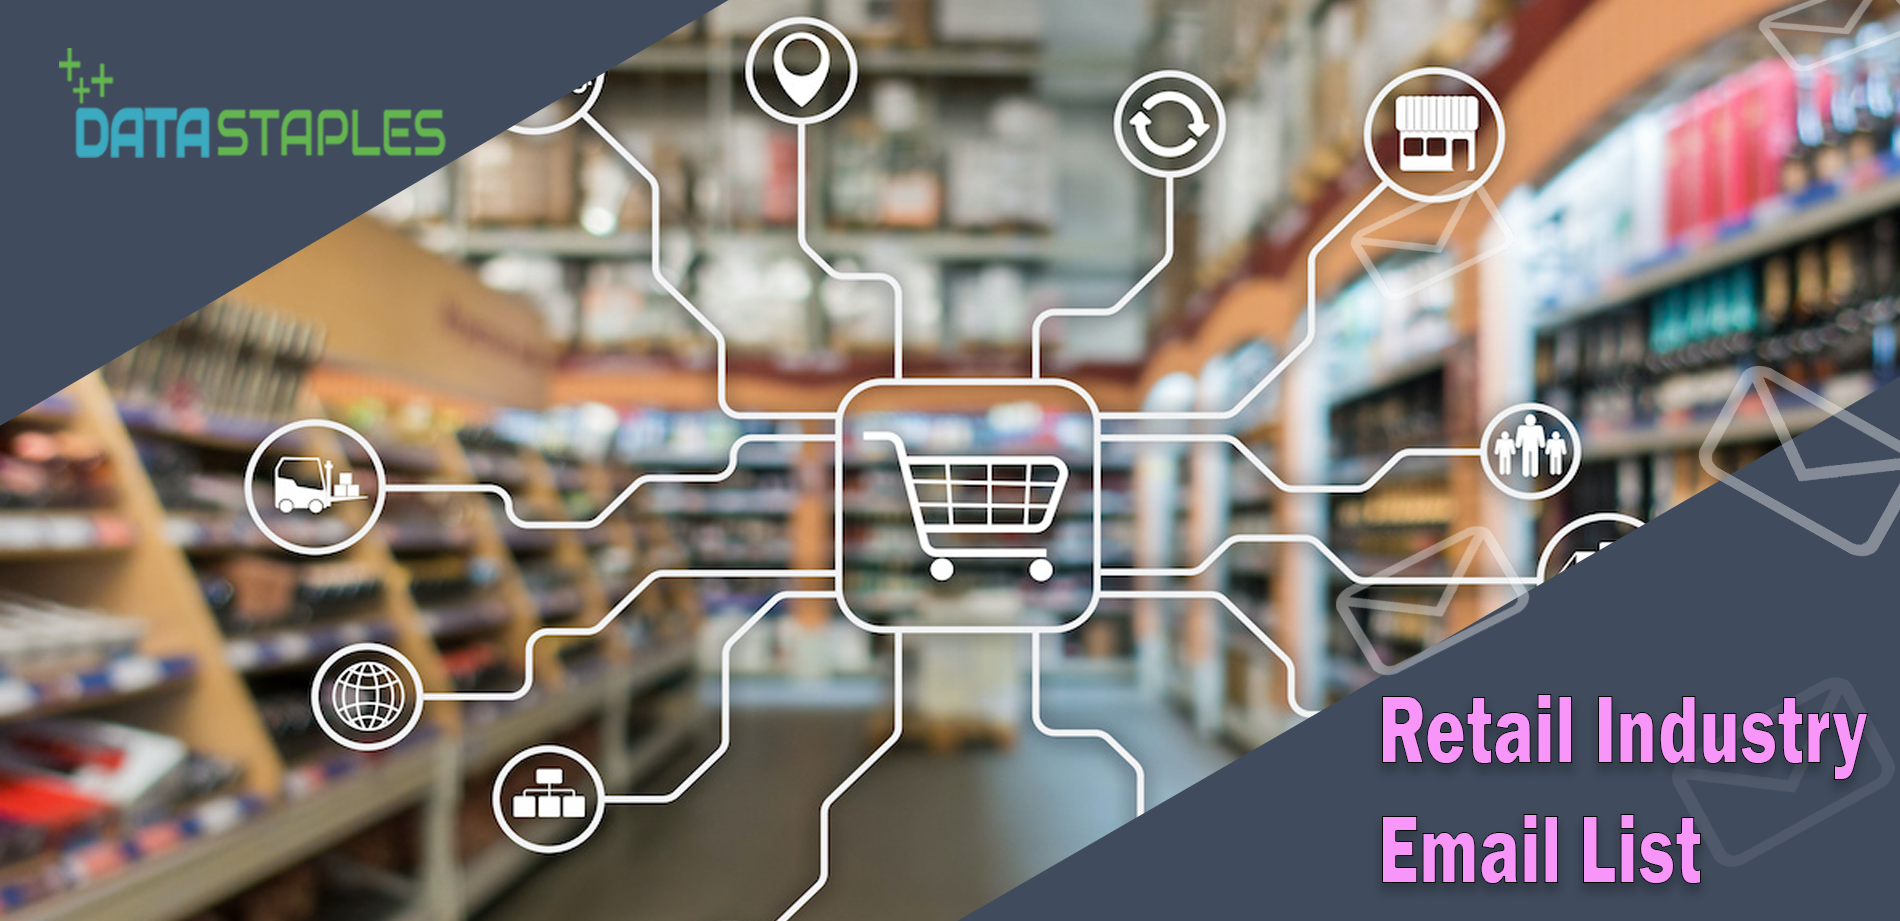 Retail Industry Email List   DataStaples